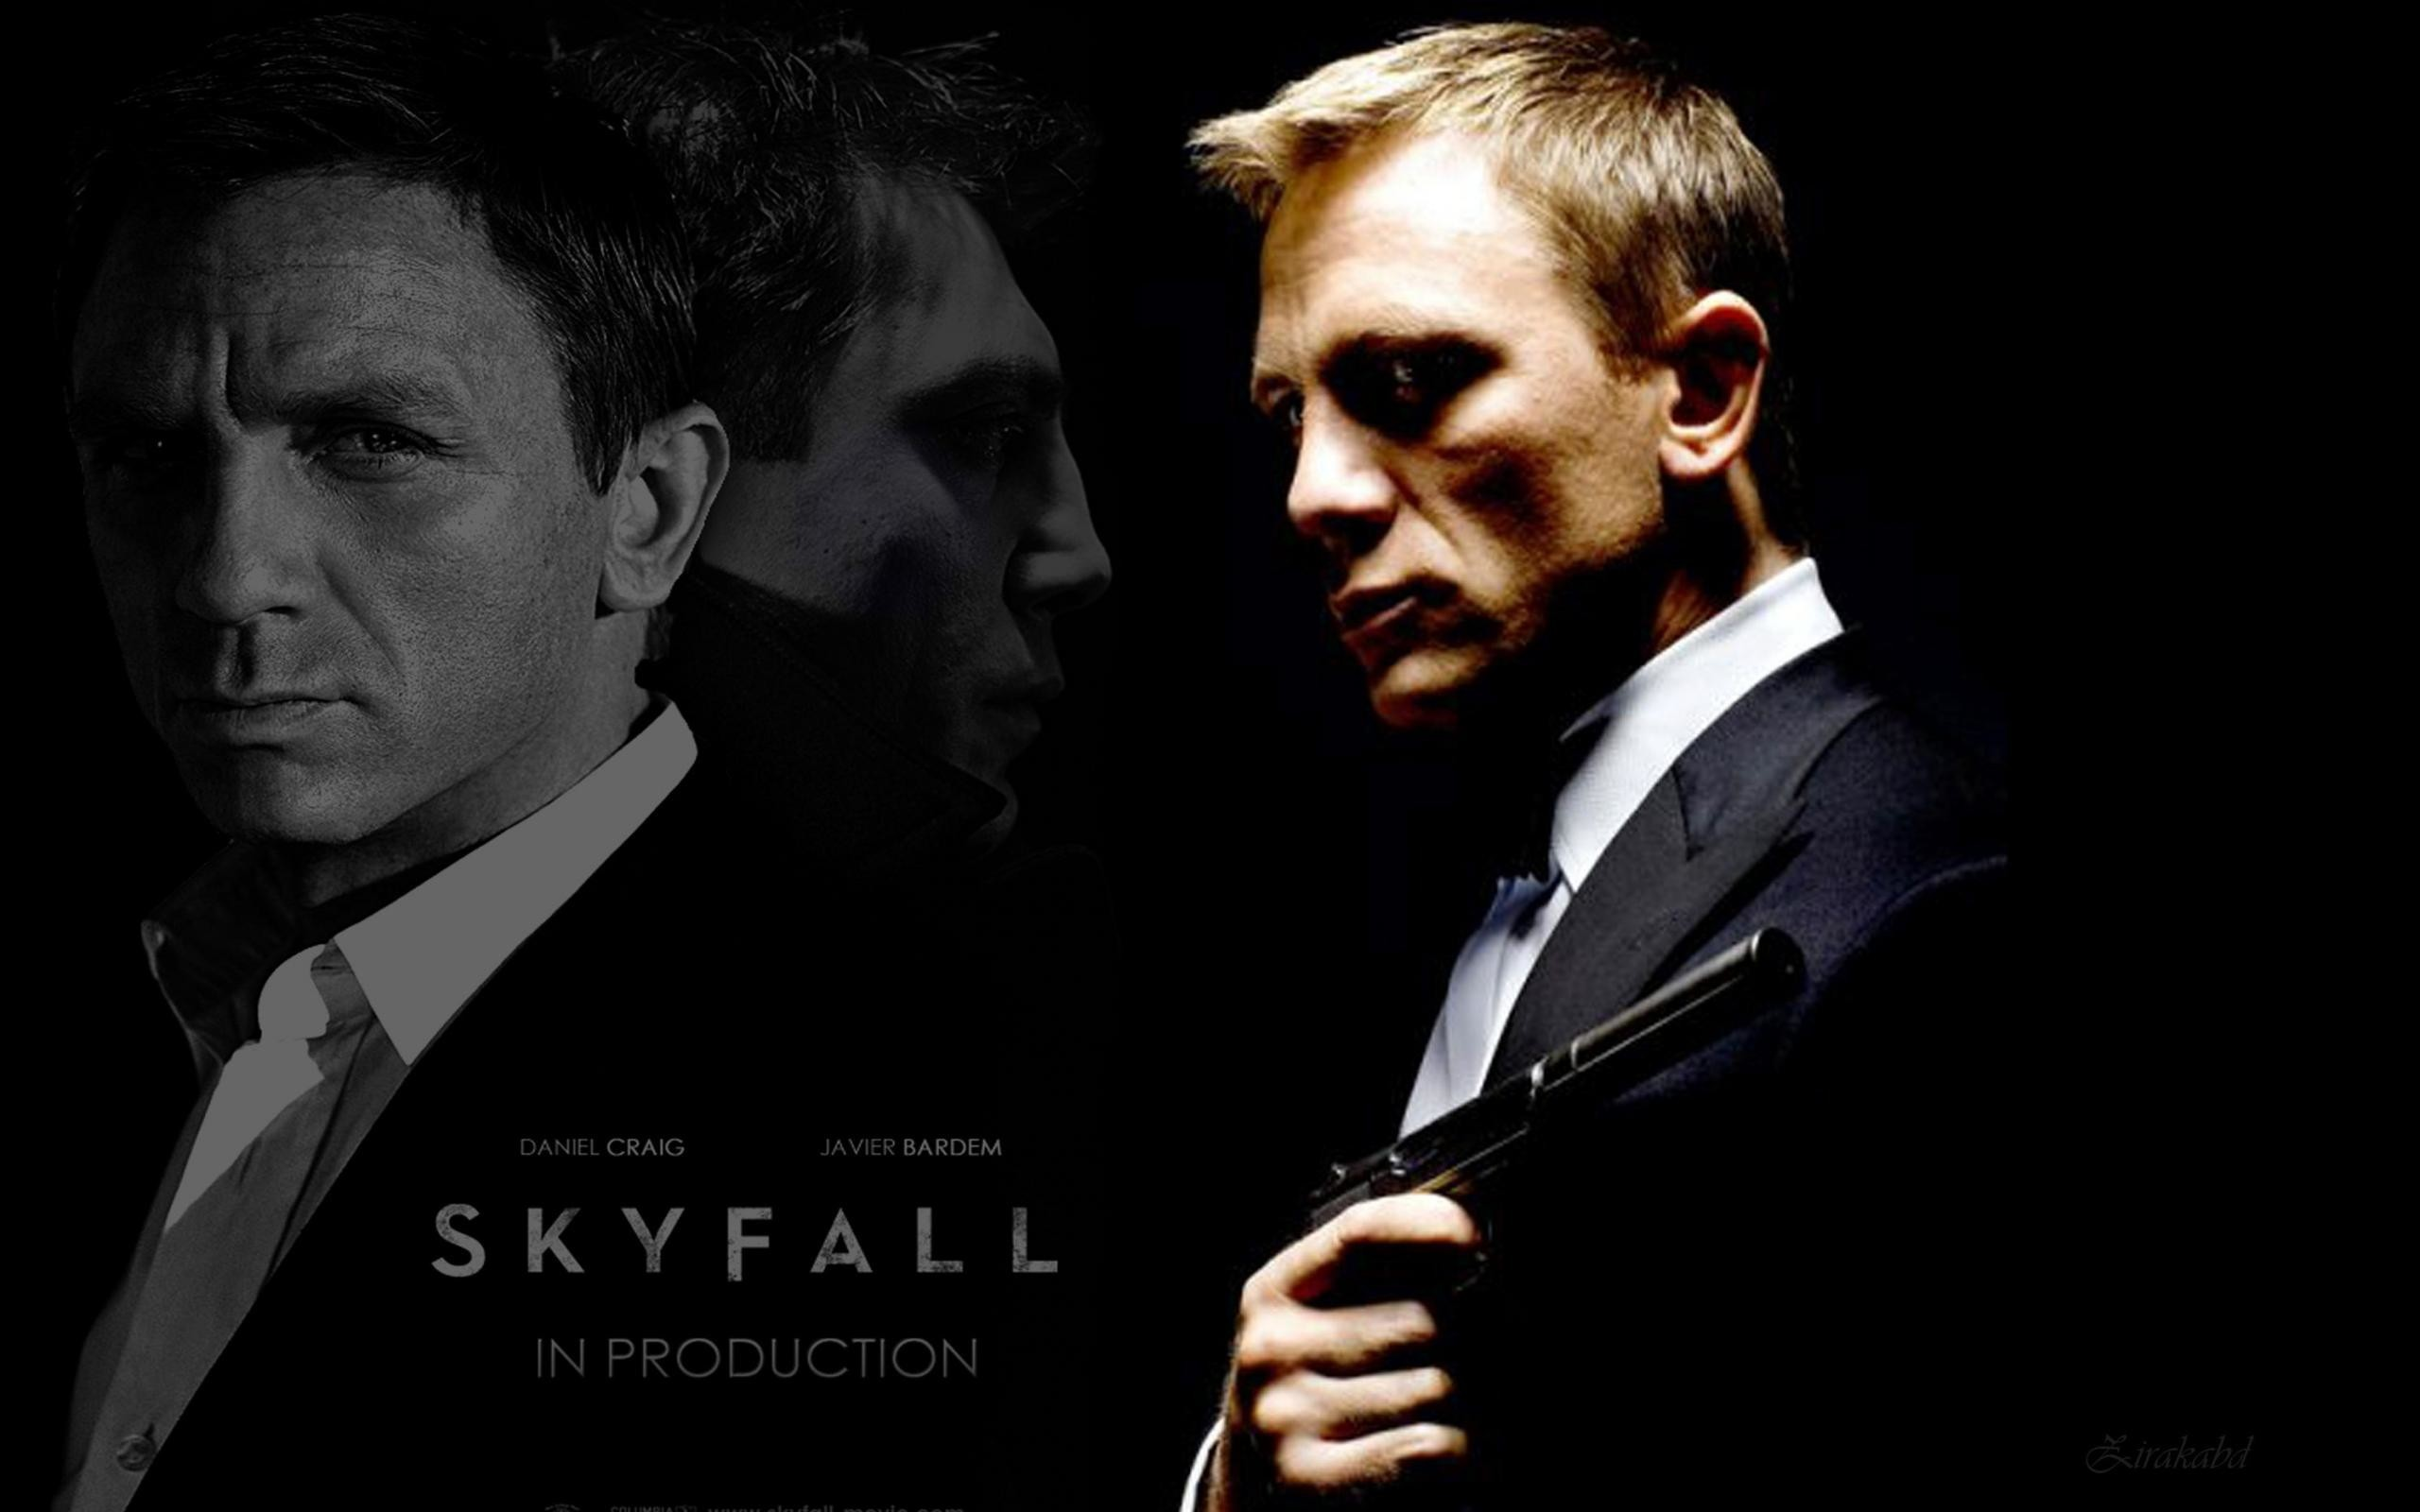 Casino Royale Wallpaper 1920x1080 64 Images